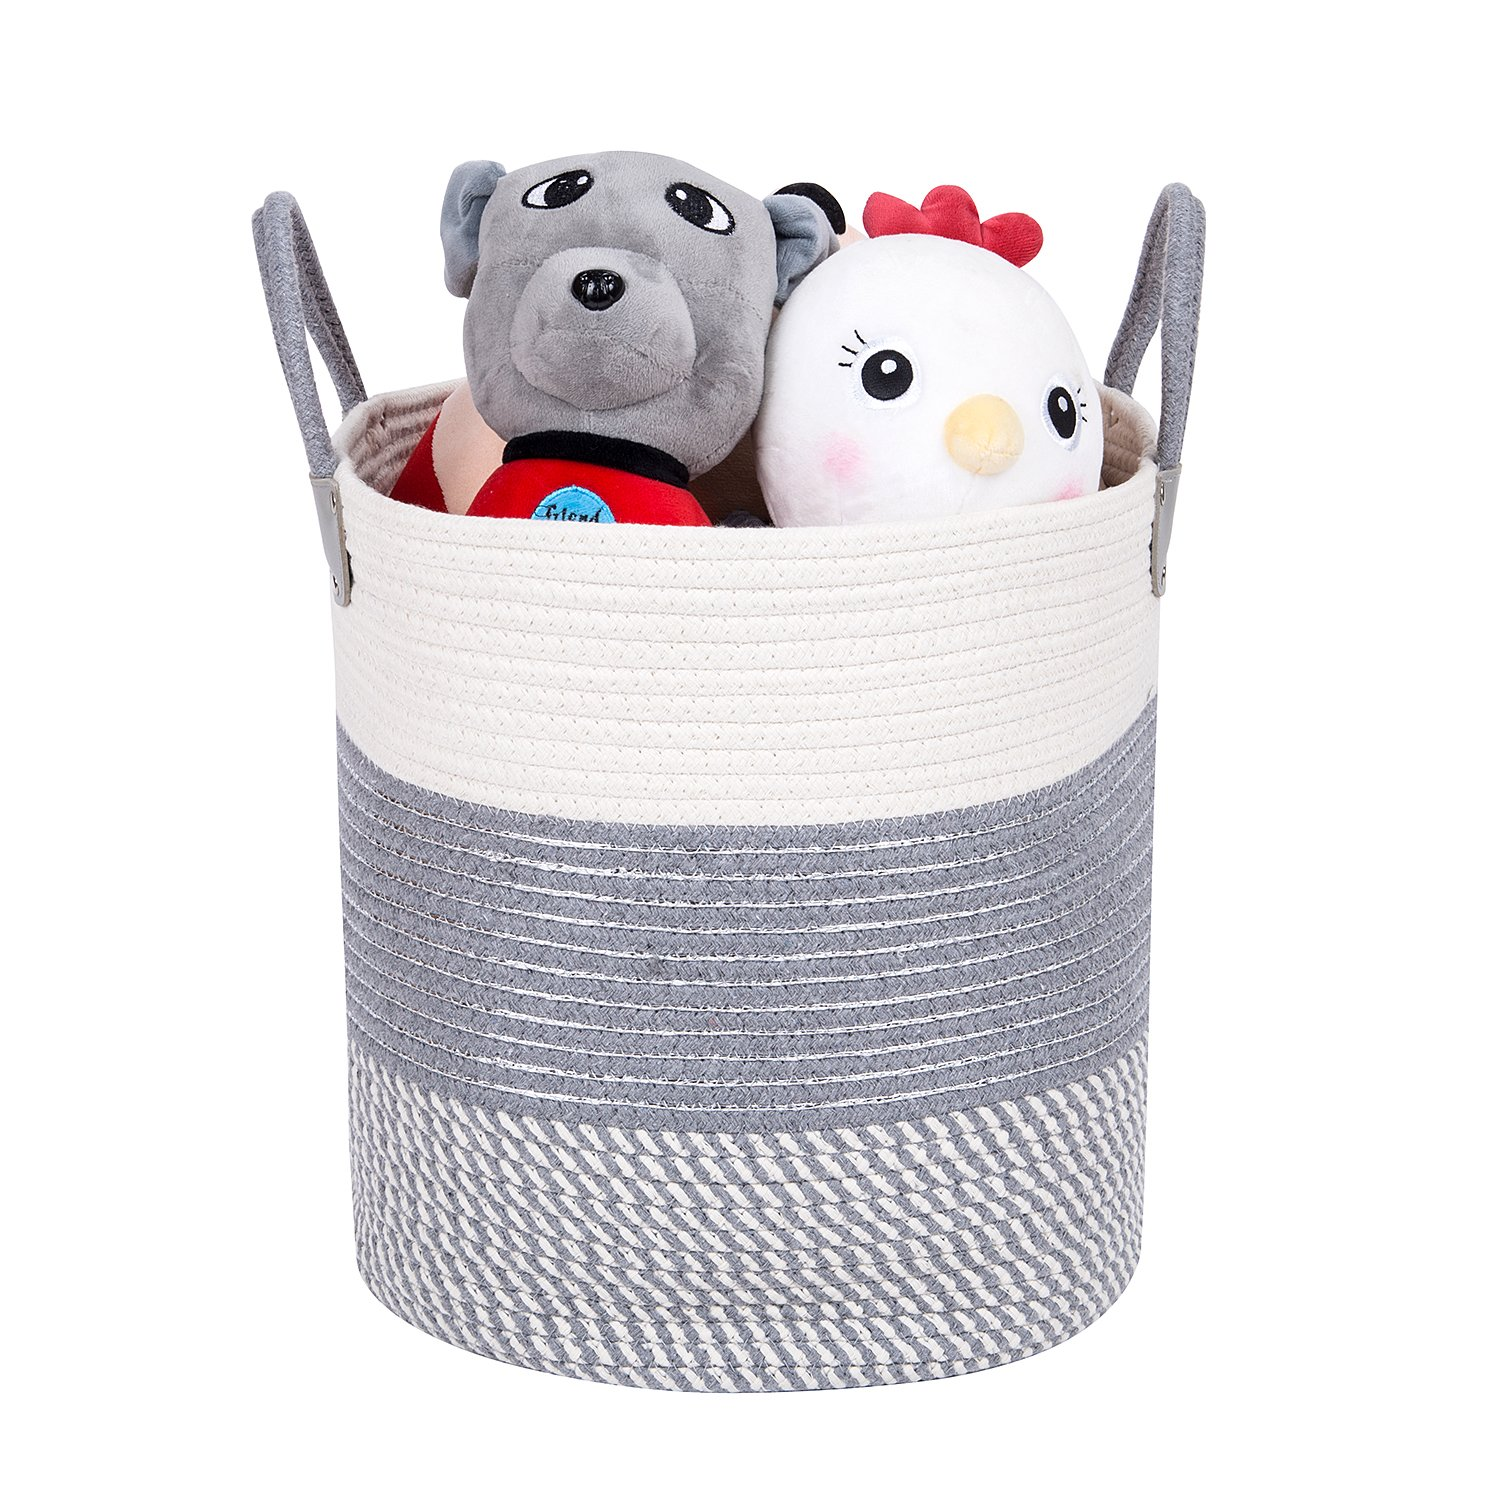 Storage Baskets Cotton Rope with Handle - 13.8'' x 13.8'' Woven Storage Bin for Baby Toy Laundry Basket for Blanket Clothes Home Decorative(White Grey and Silver)